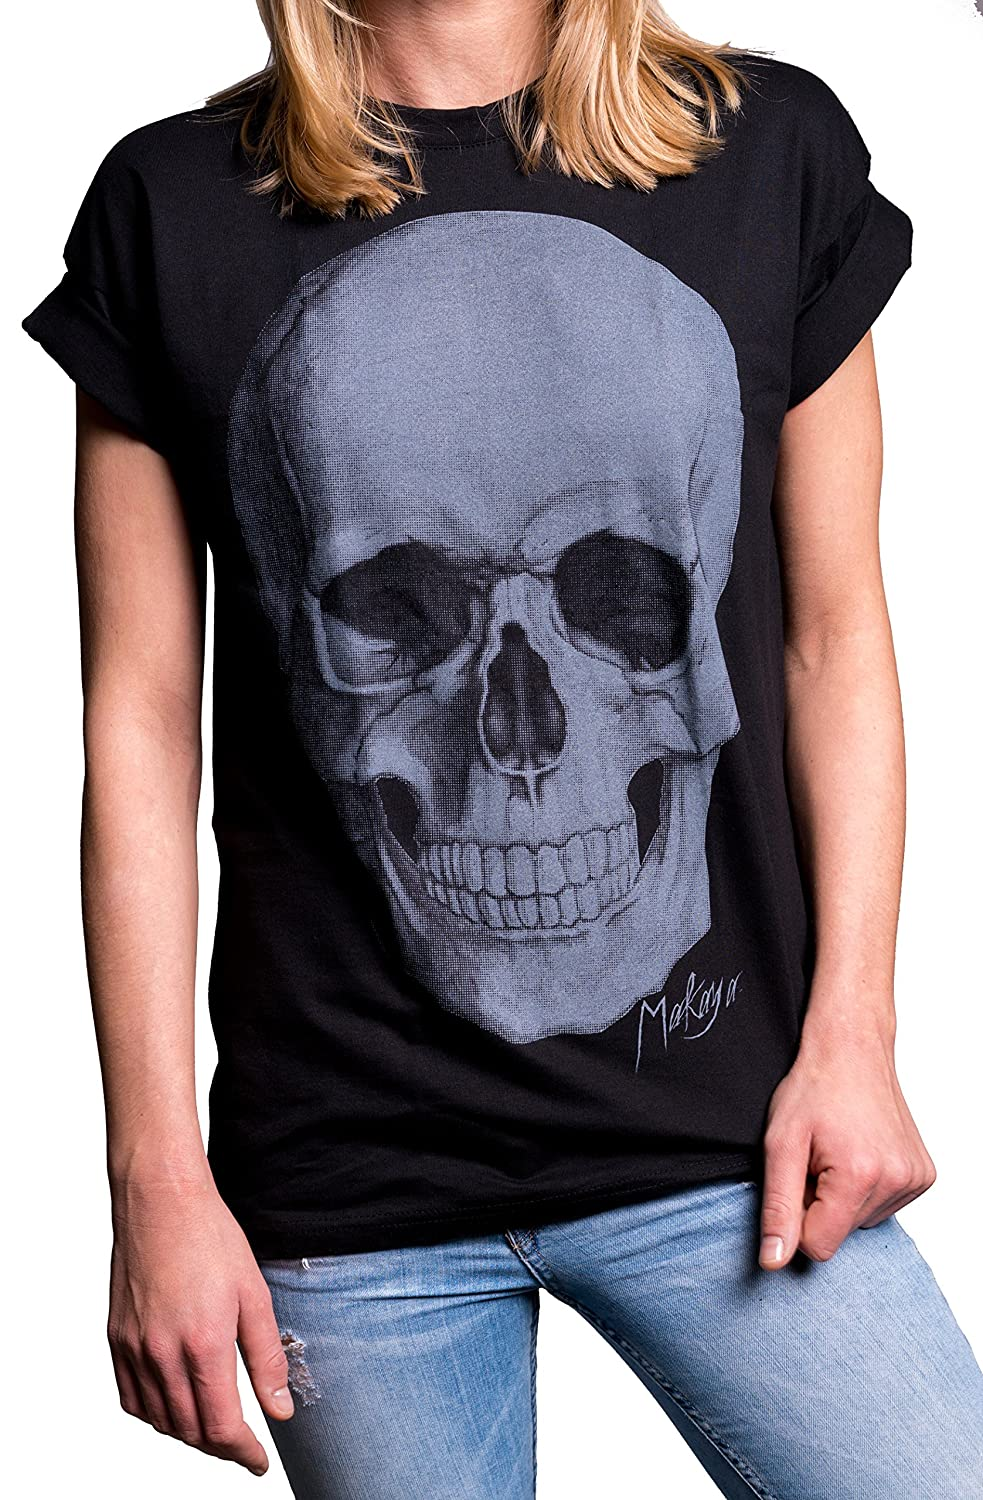 aa40ddd855 Amazon.com  MAKAYA Gothic Clothing - Skull Top Plus Size - Oversized T Shirt  Black  Clothing